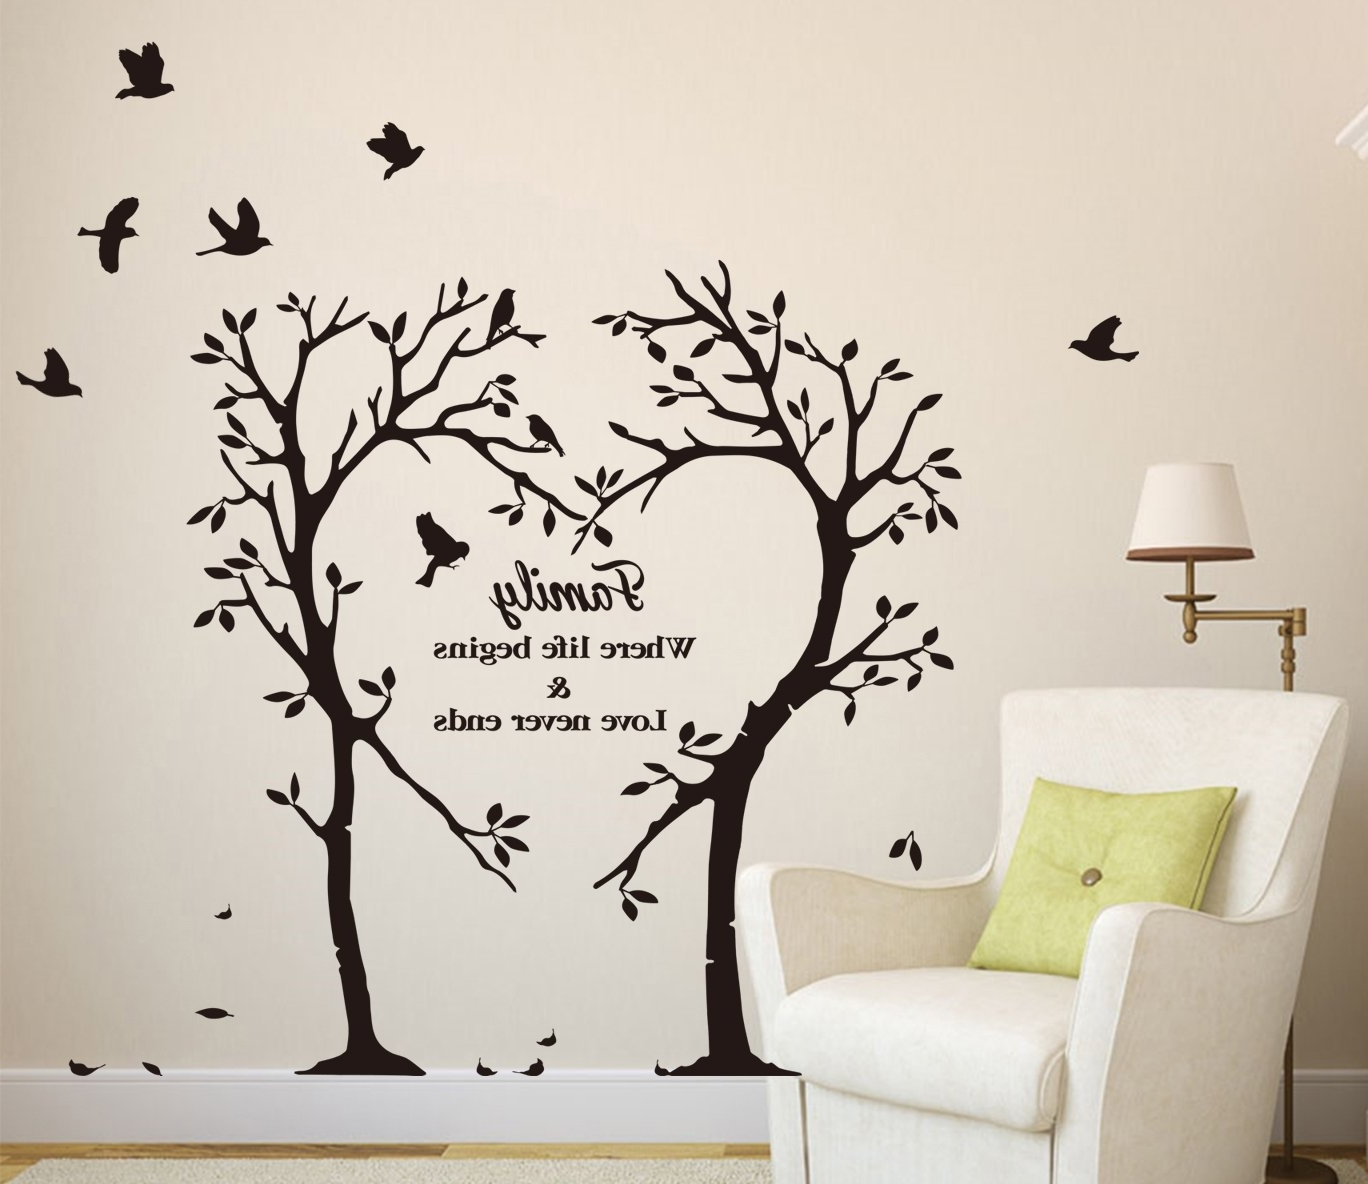 2018 Wall Tree Art Inside Large Family Inspirational Love Tree Wall Art Sticker, Wall Sticker (View 2 of 15)